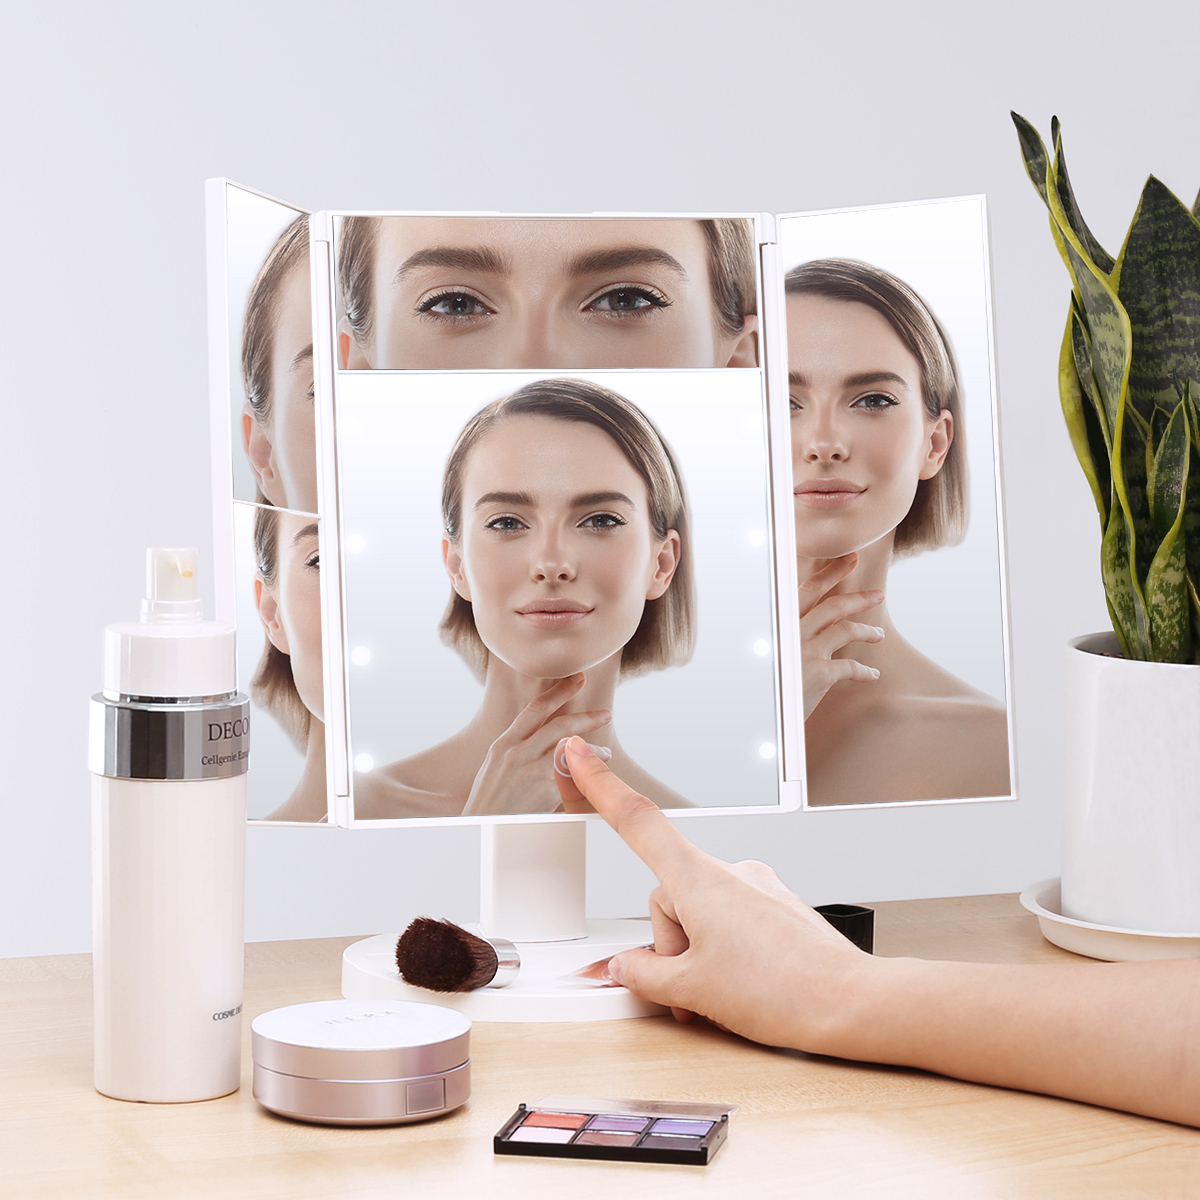 Makeup Mirror 8 LED Lighted Touch Screen 3X/2X/5X Magnification Foldable Adjustable Maquiagem LED Mirror usb led makeup mirror maquiagem double sided wireless charge for phone led touch screen amplifier make up mirror cosmetics tool